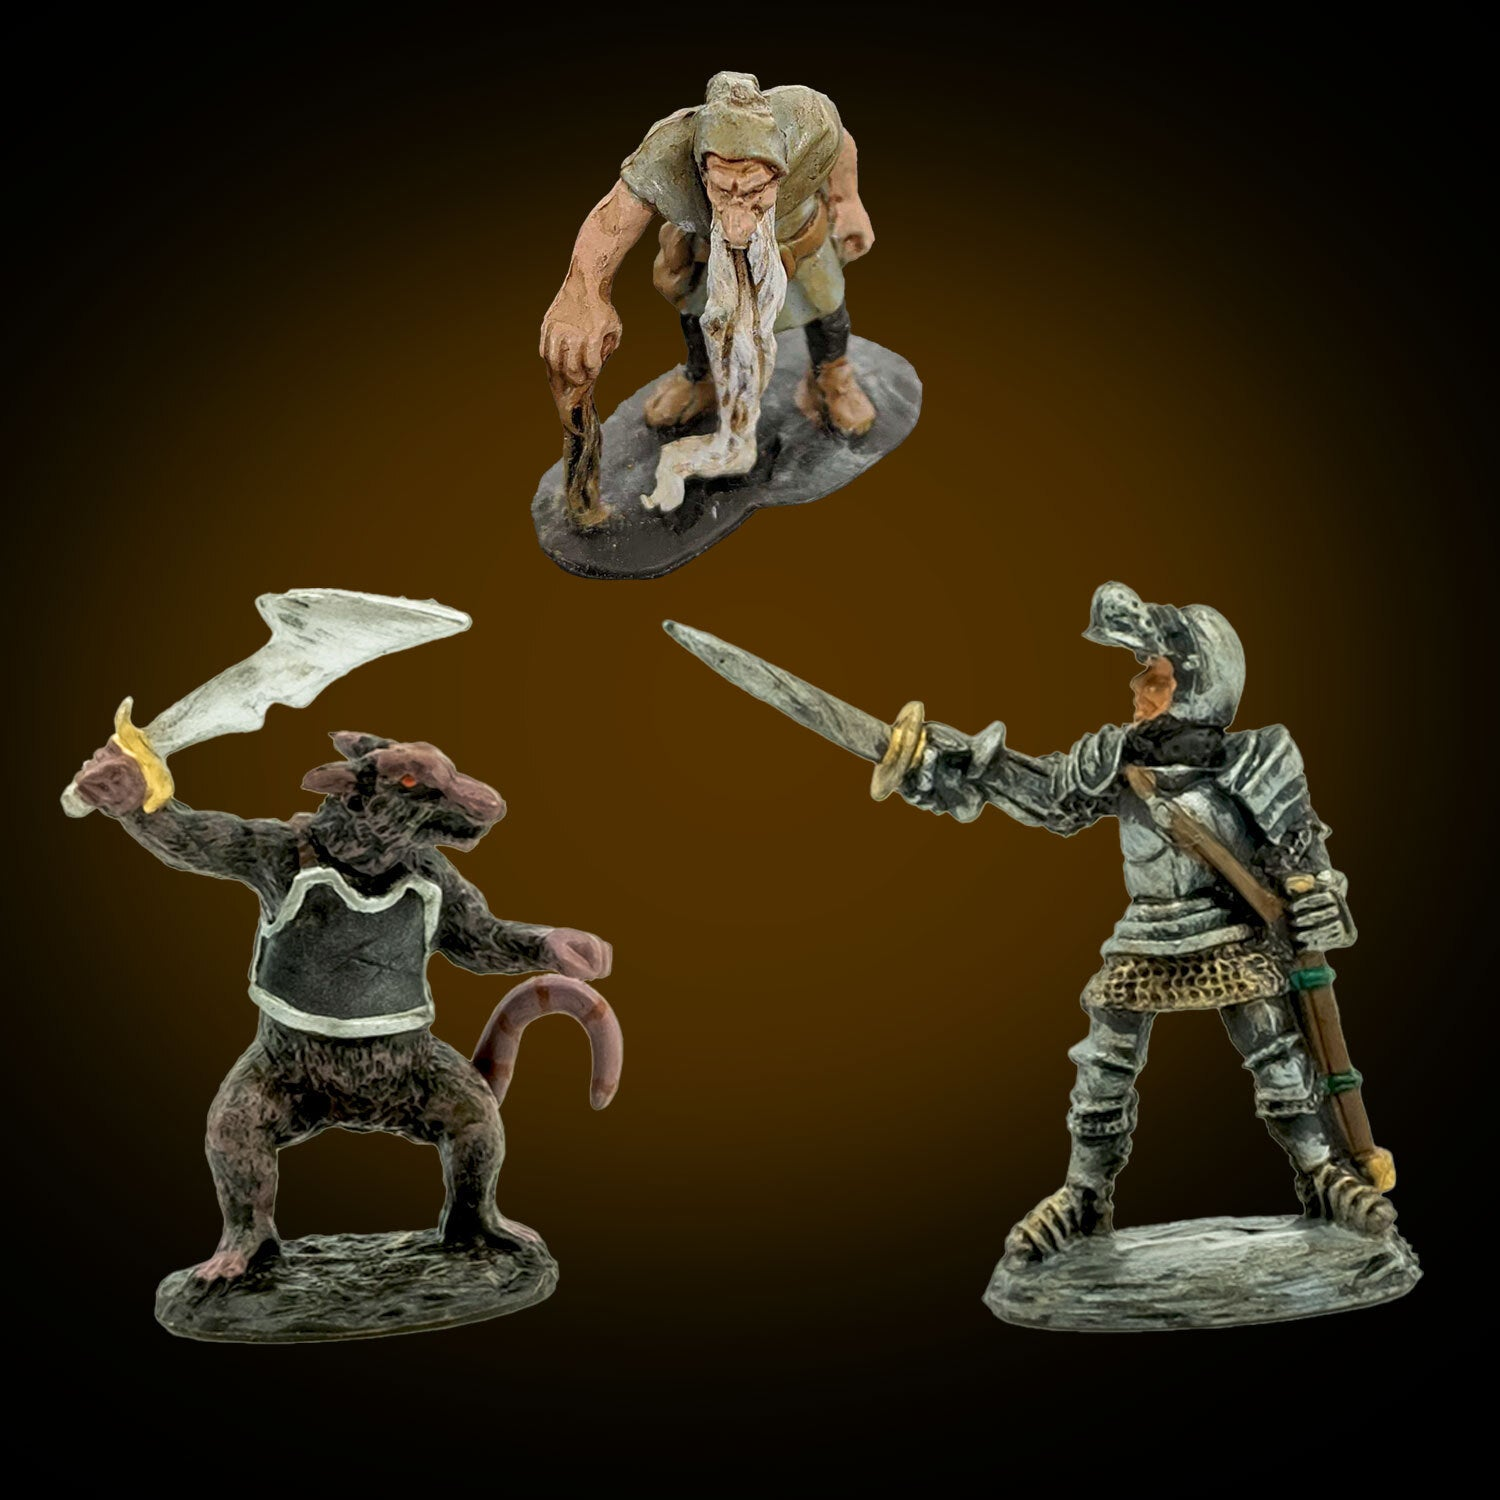 Dwarven Forge painted miniatures